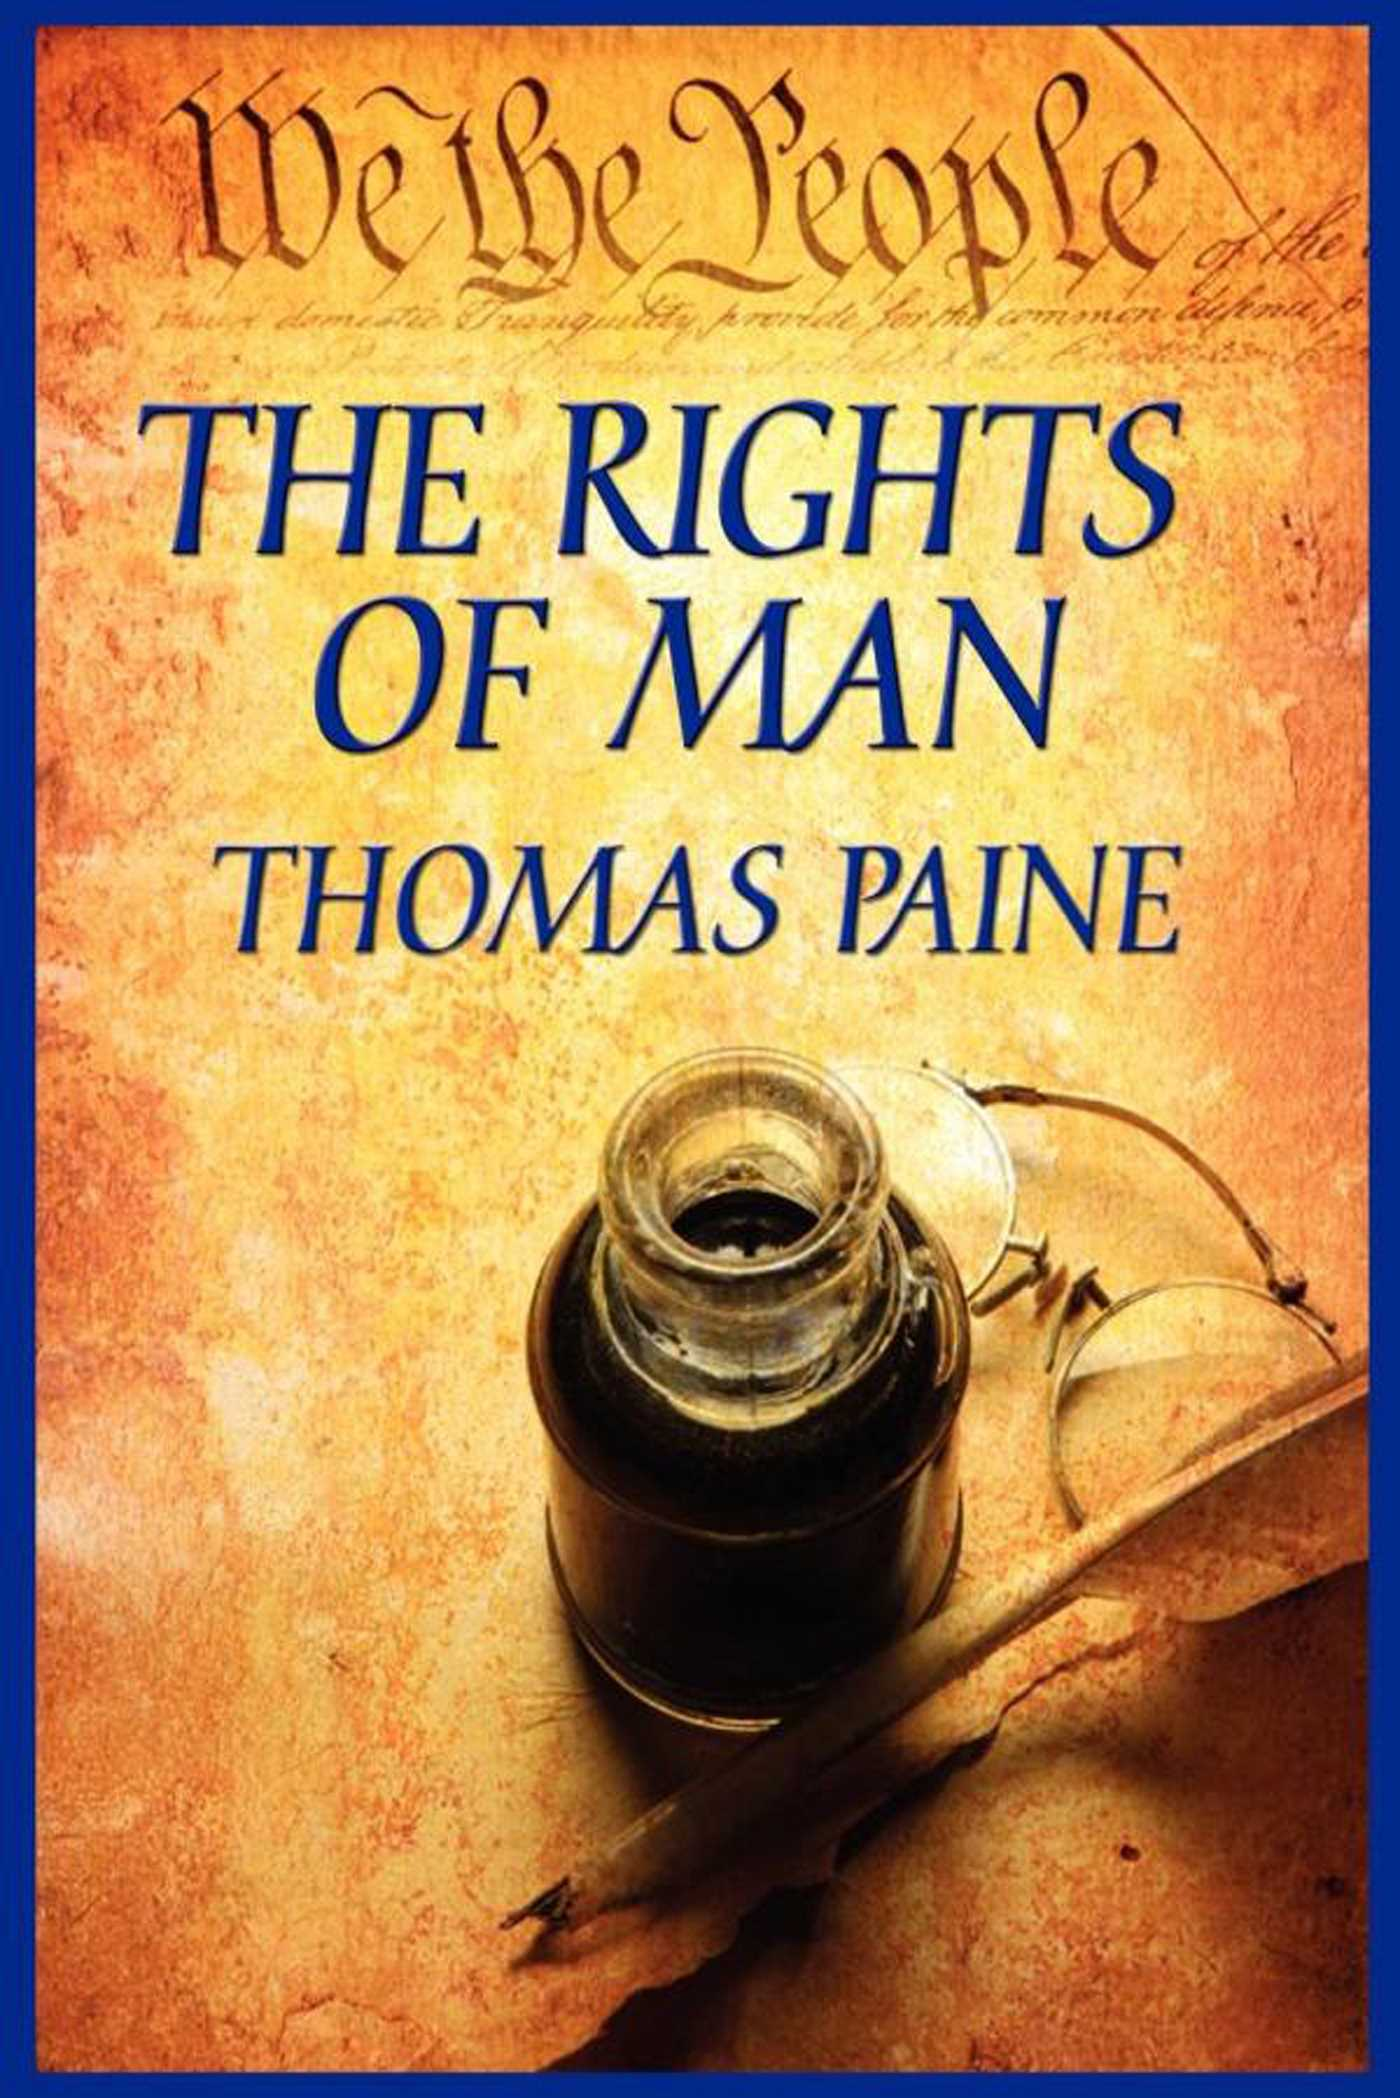 Thomas paine quotes rights of man essay